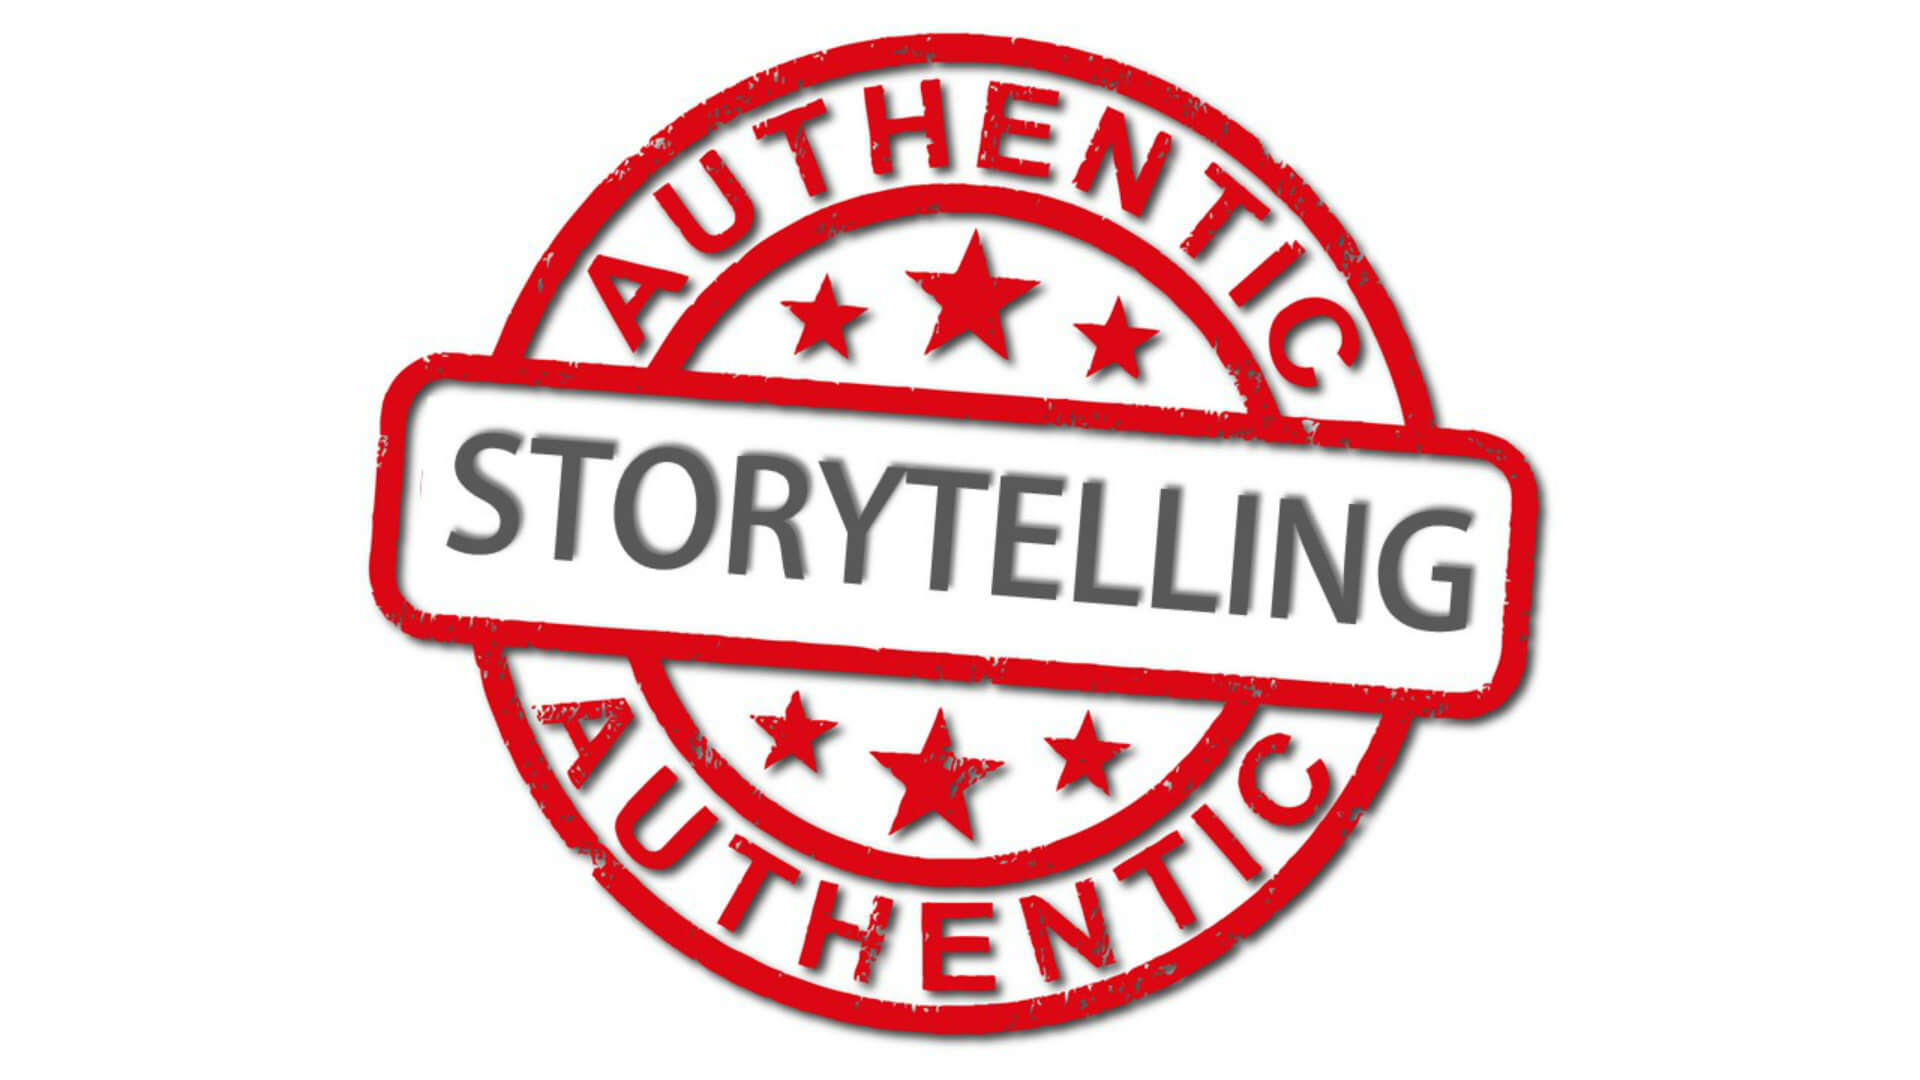 authentic_story_telling-wide_1920